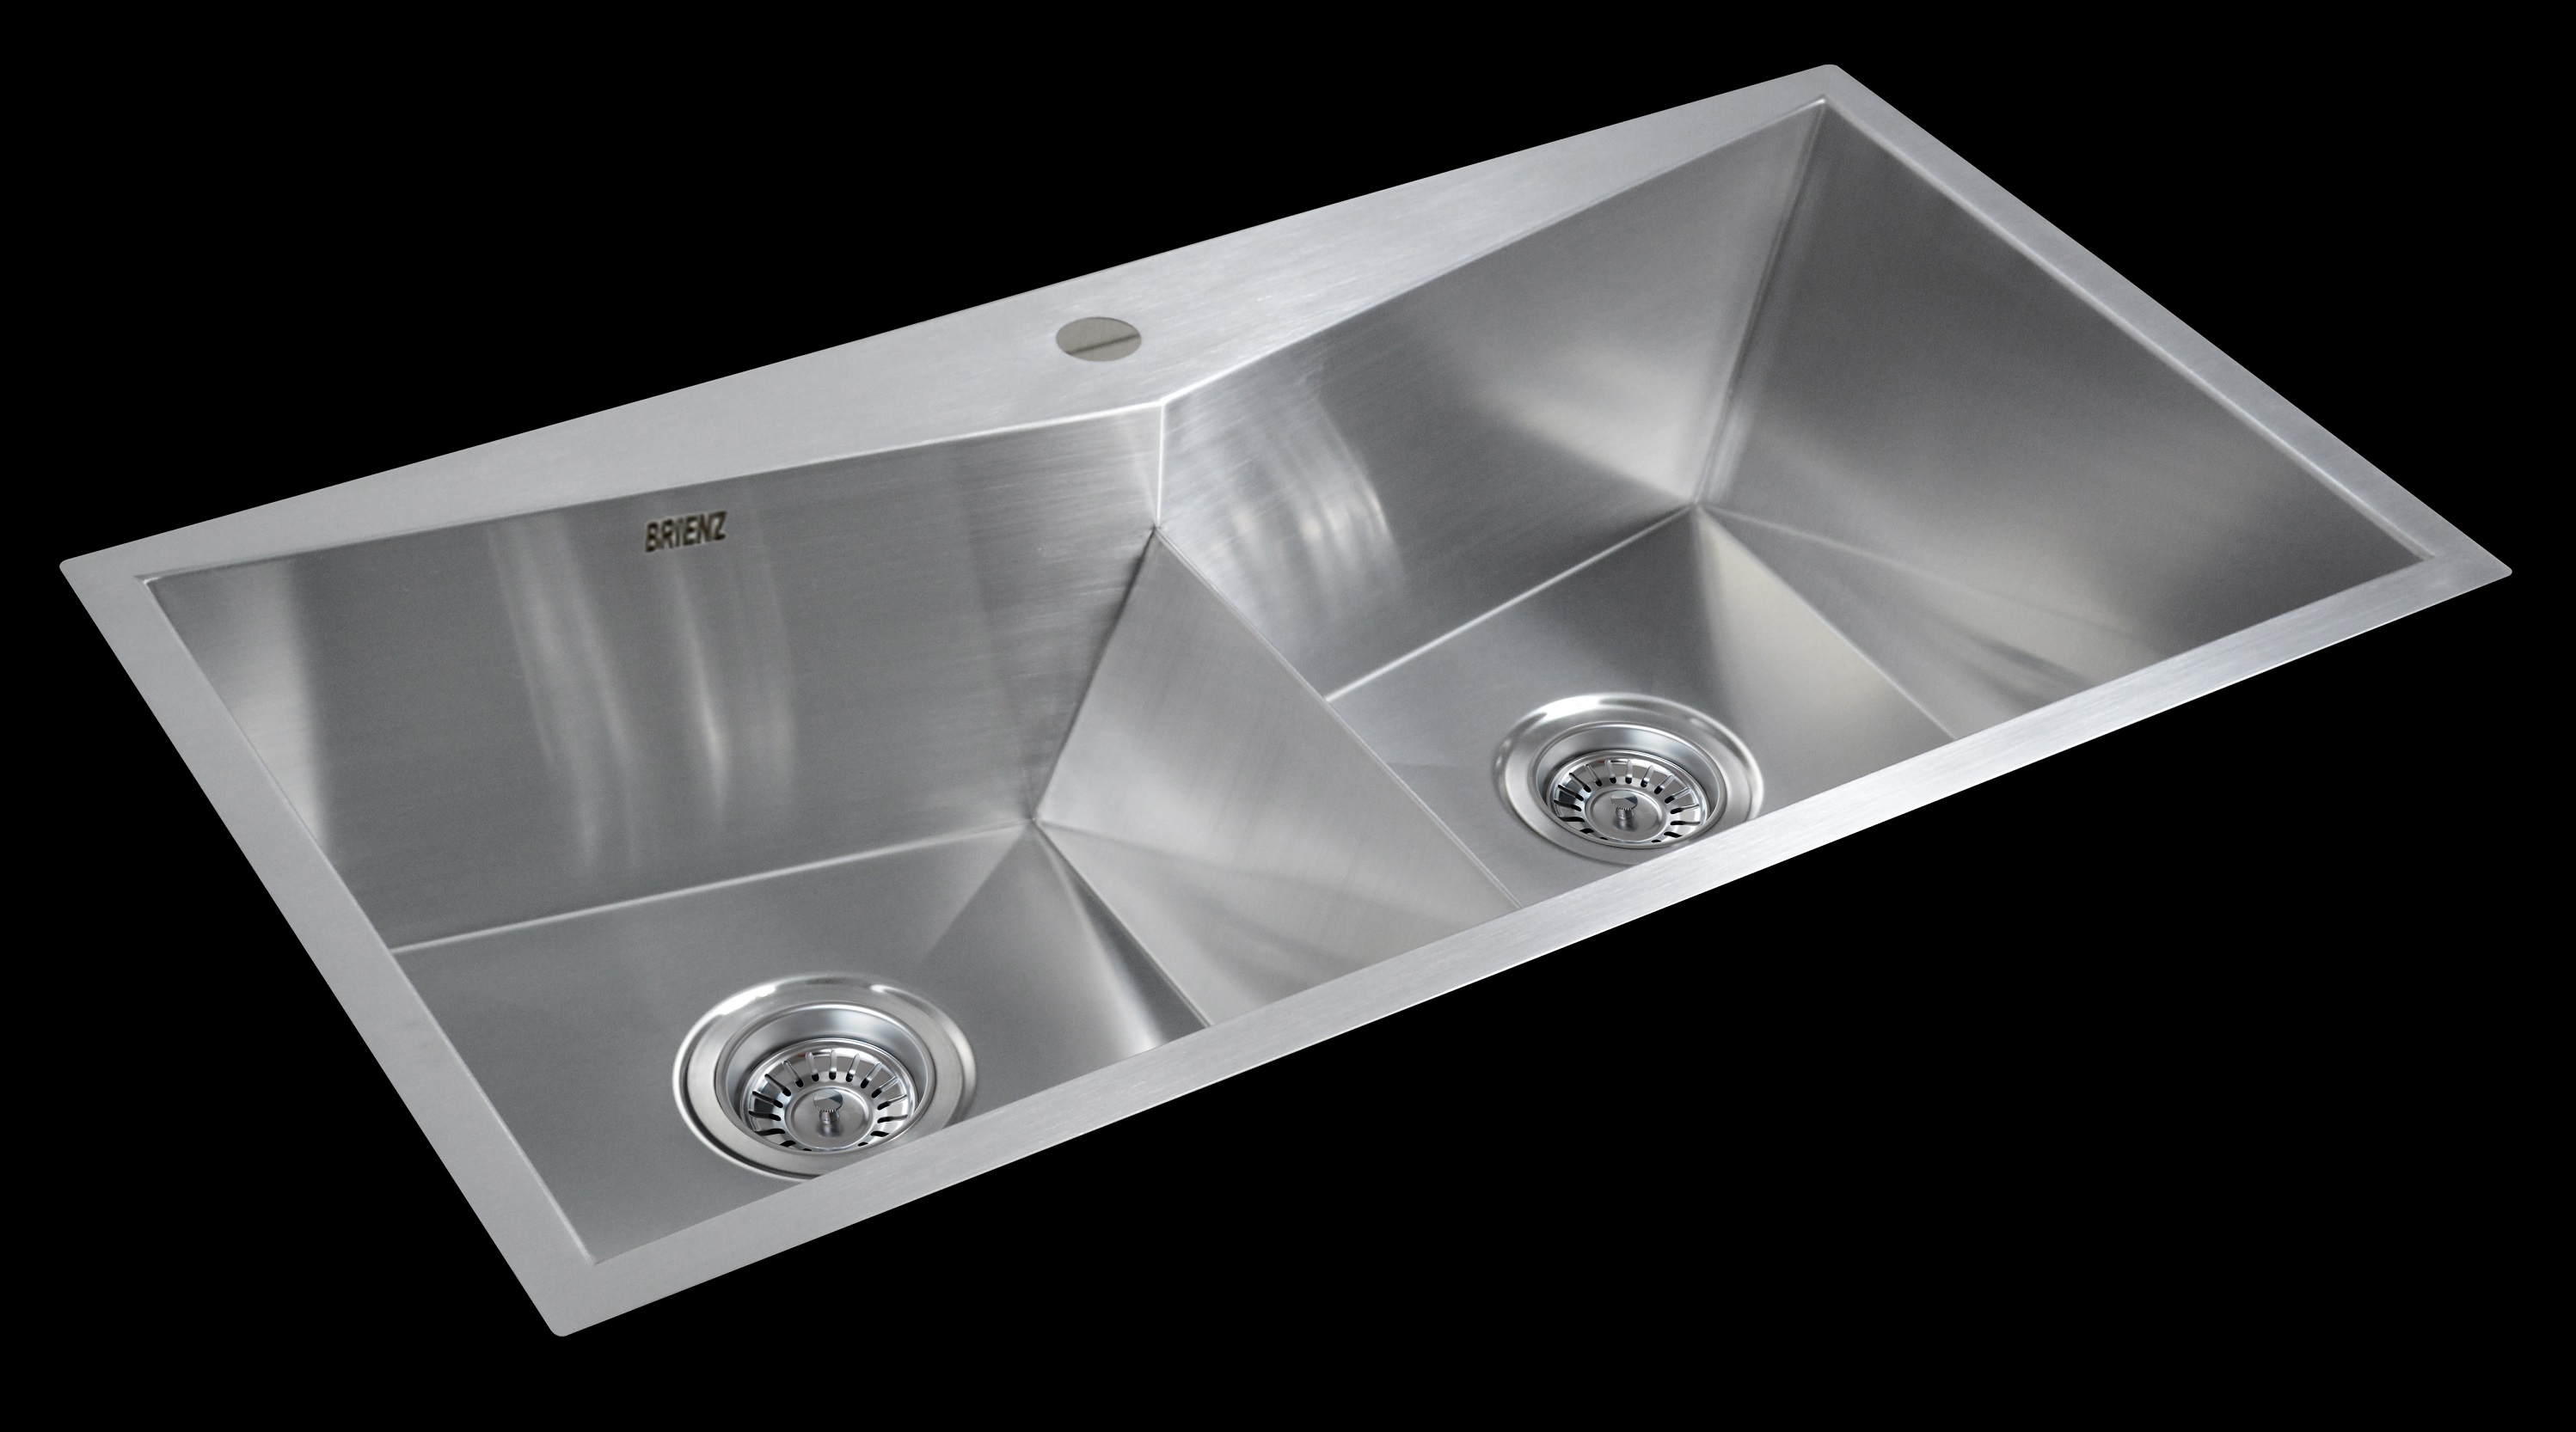 850x450mm Handmade Stainless Steel Topmount Kitchen Laundry Sink with Waste  Z2523